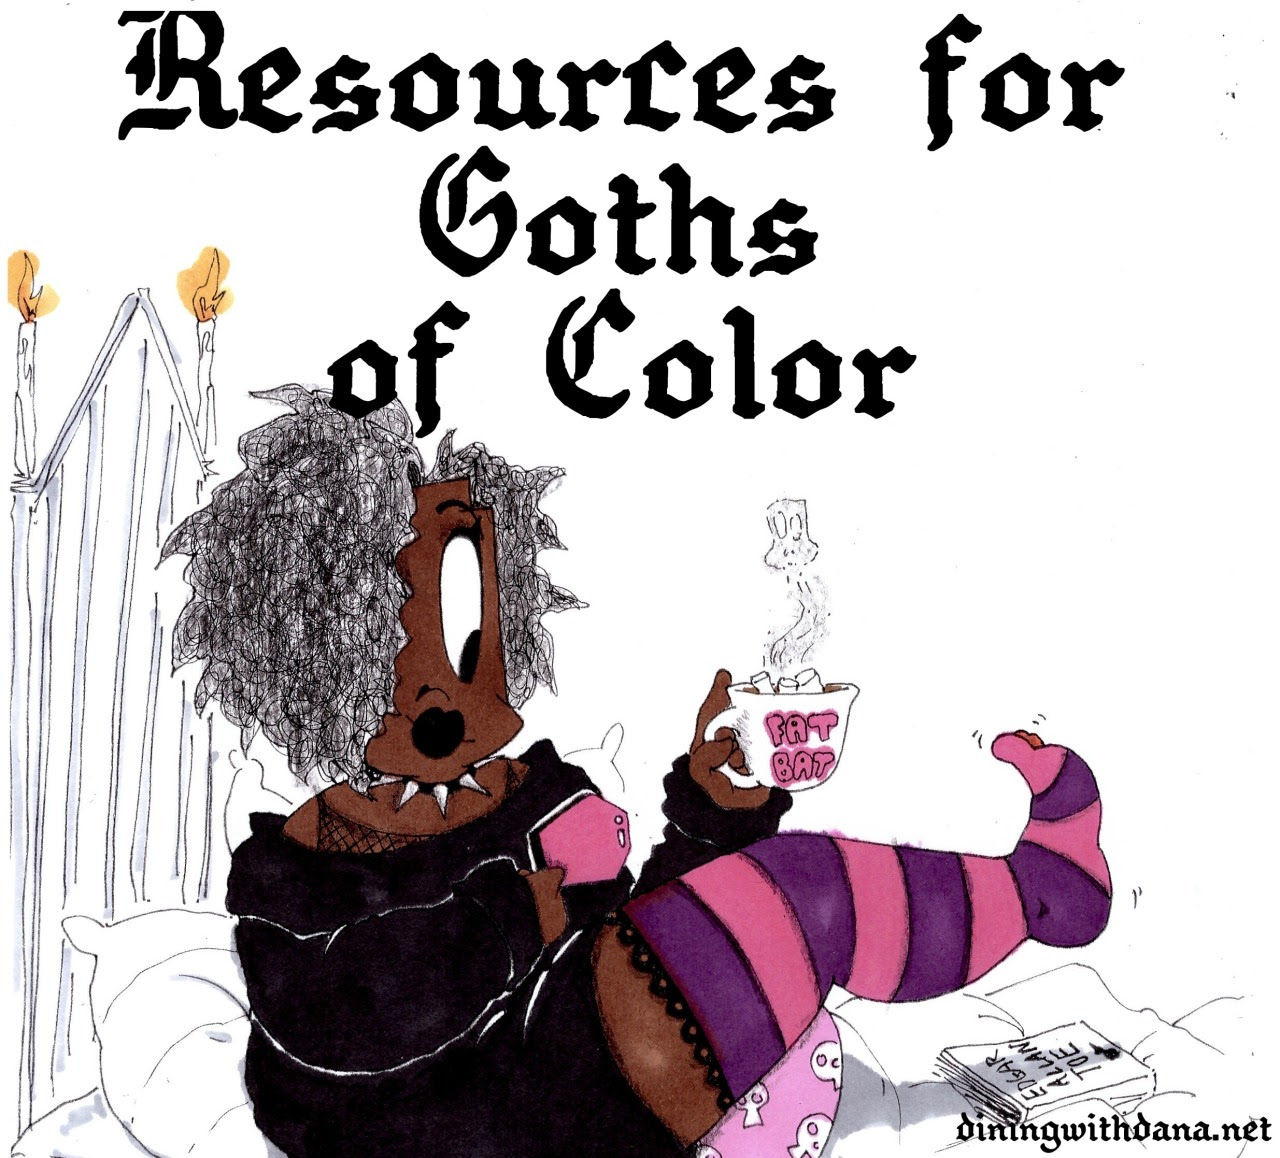 "Resources for Goths of Color minipost Hey Big Bats! This blog is a resource for all and any backgrounds - even for you, immaterial sentient being. However, you might be like me and considered a wink non-traditional. So, I thought I would share some of my favorite links for the freaks among freaks: Afropunk in all its glory. gothiccharmschool on Goths of Color. POCs in Goth/Punk/Alternative music Masterpost for a long list of bands. ""I am so goth I was born black"" inspirational article on Coilhouse. Black/African American Goths group on Facebook. Color Me Goth no longer active, but this was a fab blog about a Goth of Color. Beijing Punk documentary on Beijing's underground scene during the year of the Olympics. Goths of Color article on Morbid Outlook. Goth.net Middle East/Russia/Europe forums. Metal Archives - browse by country which covers a multitude of areas. Goths of Color Beauty Tips guest post on Stripy Tights and Dark Delights. Being a Black Goth…the Conundrum on Mooky Chick. Blogs: blacksheepgoths covers multiple ethnicities and underrepresented alternative folk. proletariangothic collects images of underrepresented punks. iamsogothiwasbornblack afro Goth blog. darqueandlovely alternative multicultural images. F*ck Yeah Black Goths images of black goths. Most of the blogs cover a range of cultures, but I would love to hear your story as - or your experience with - a Goth of Color! Also, what are some of your favorite links?"